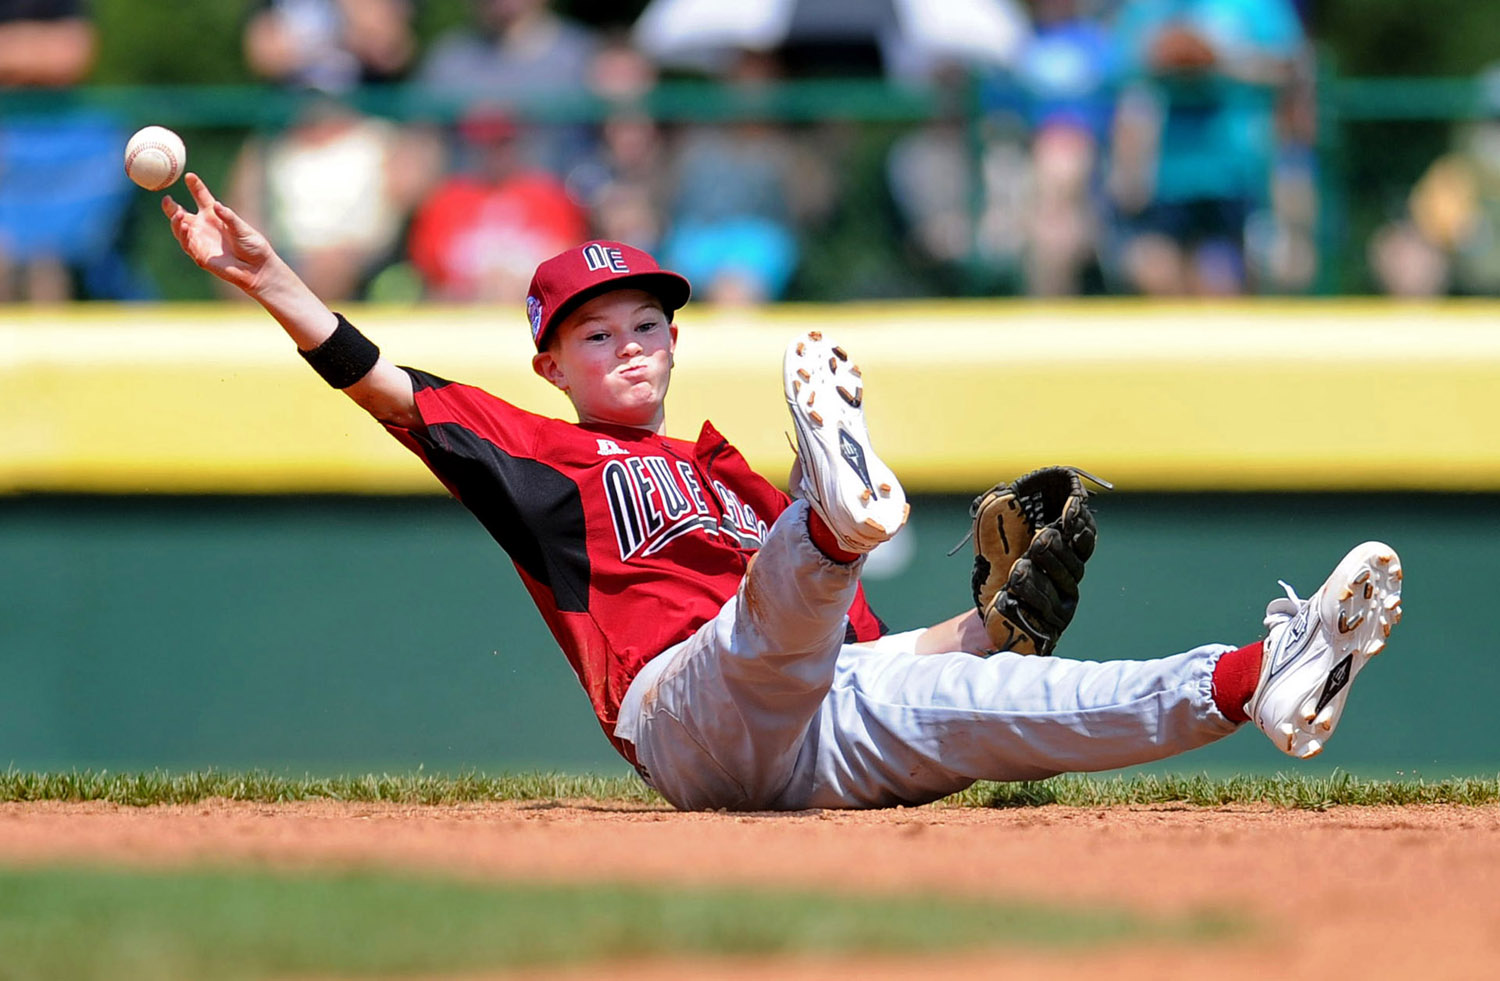 Billy McGrath throws to first after diving for a ball during Fairfield American's first game of the Little League World Series in Williamsport, Penn., on Friday, August 20, 2010.